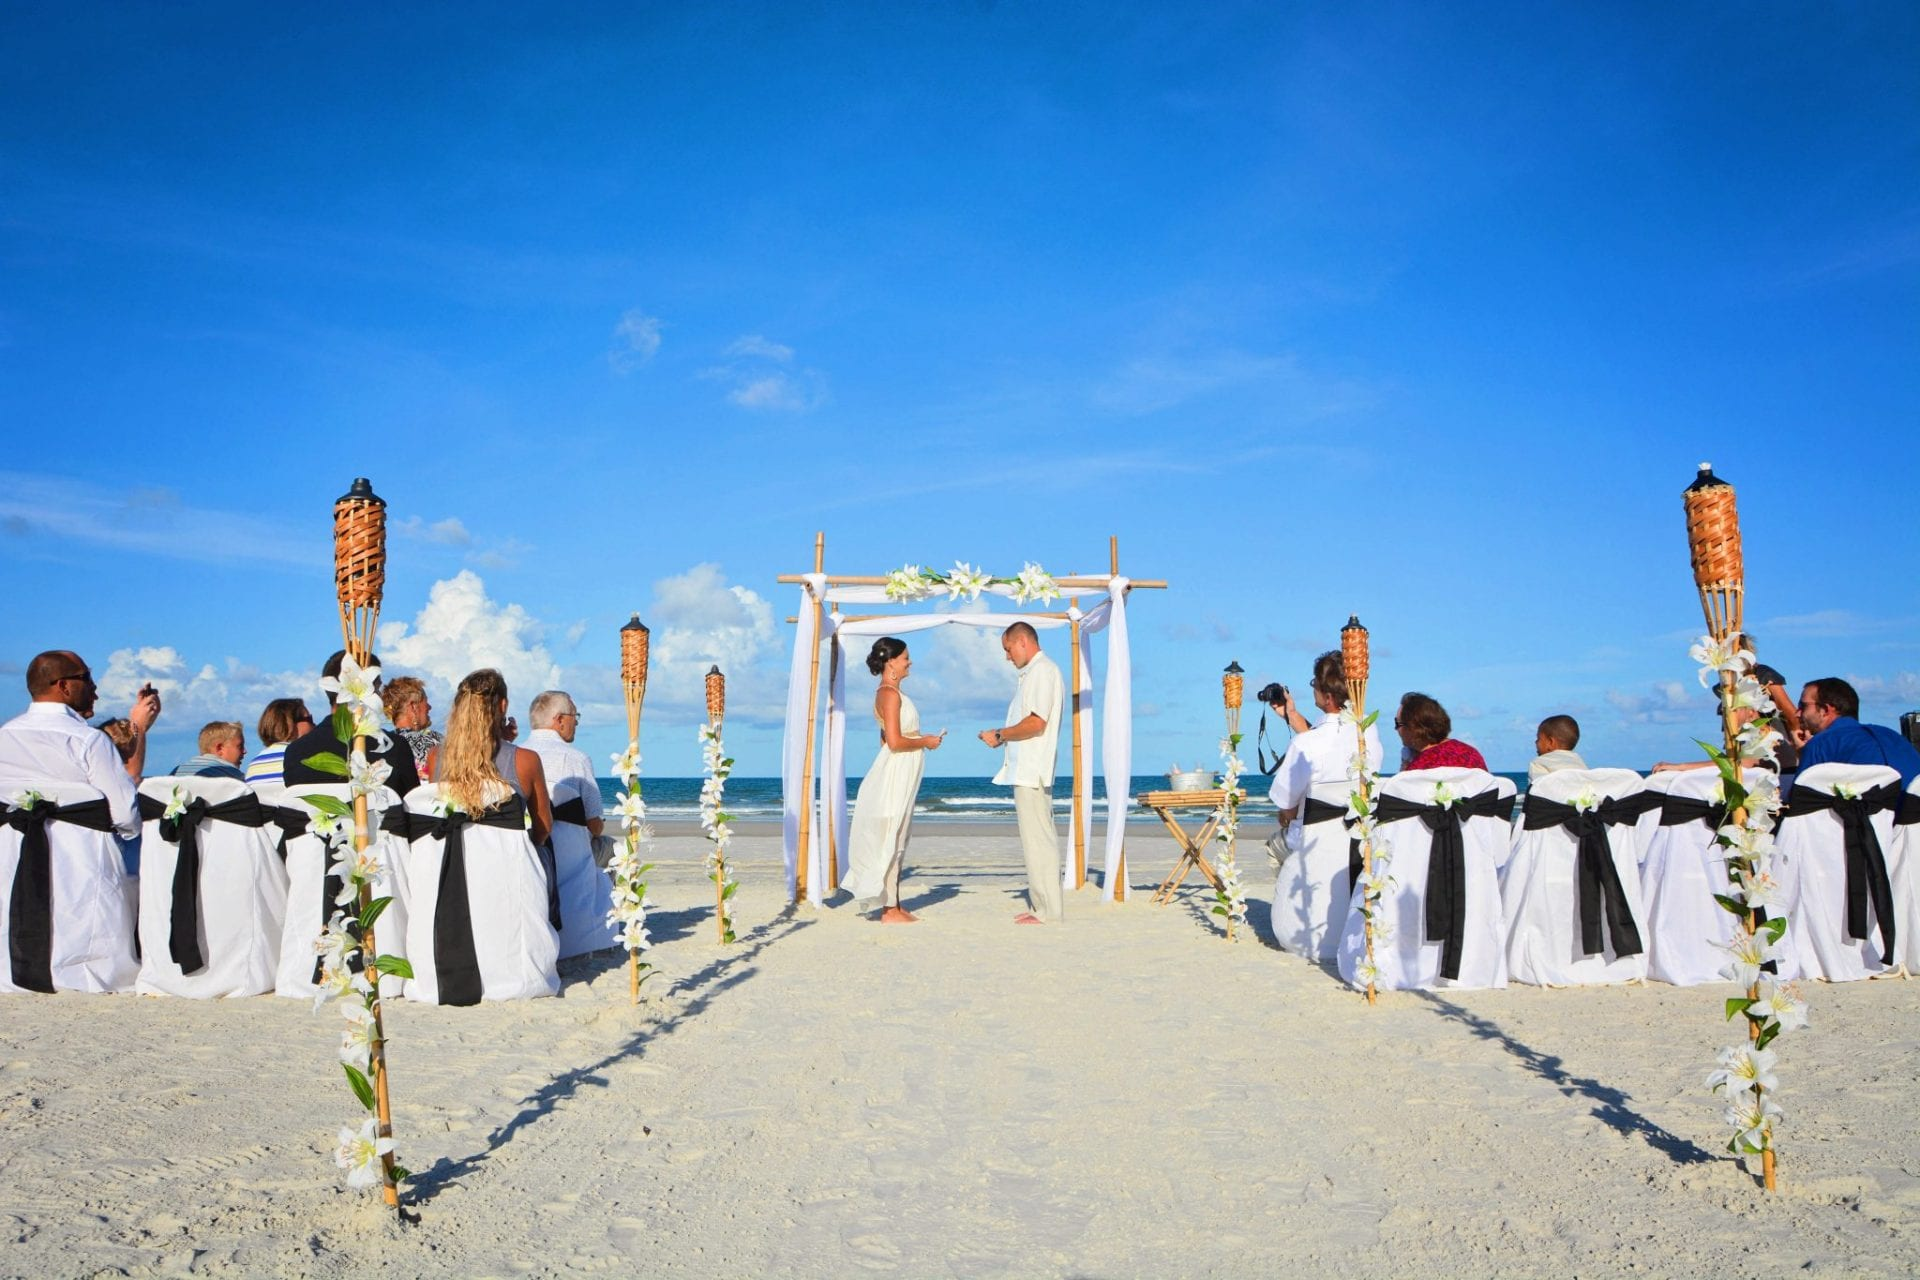 Couple says vows on Jacksonville Beach under bamboo wedding canopy